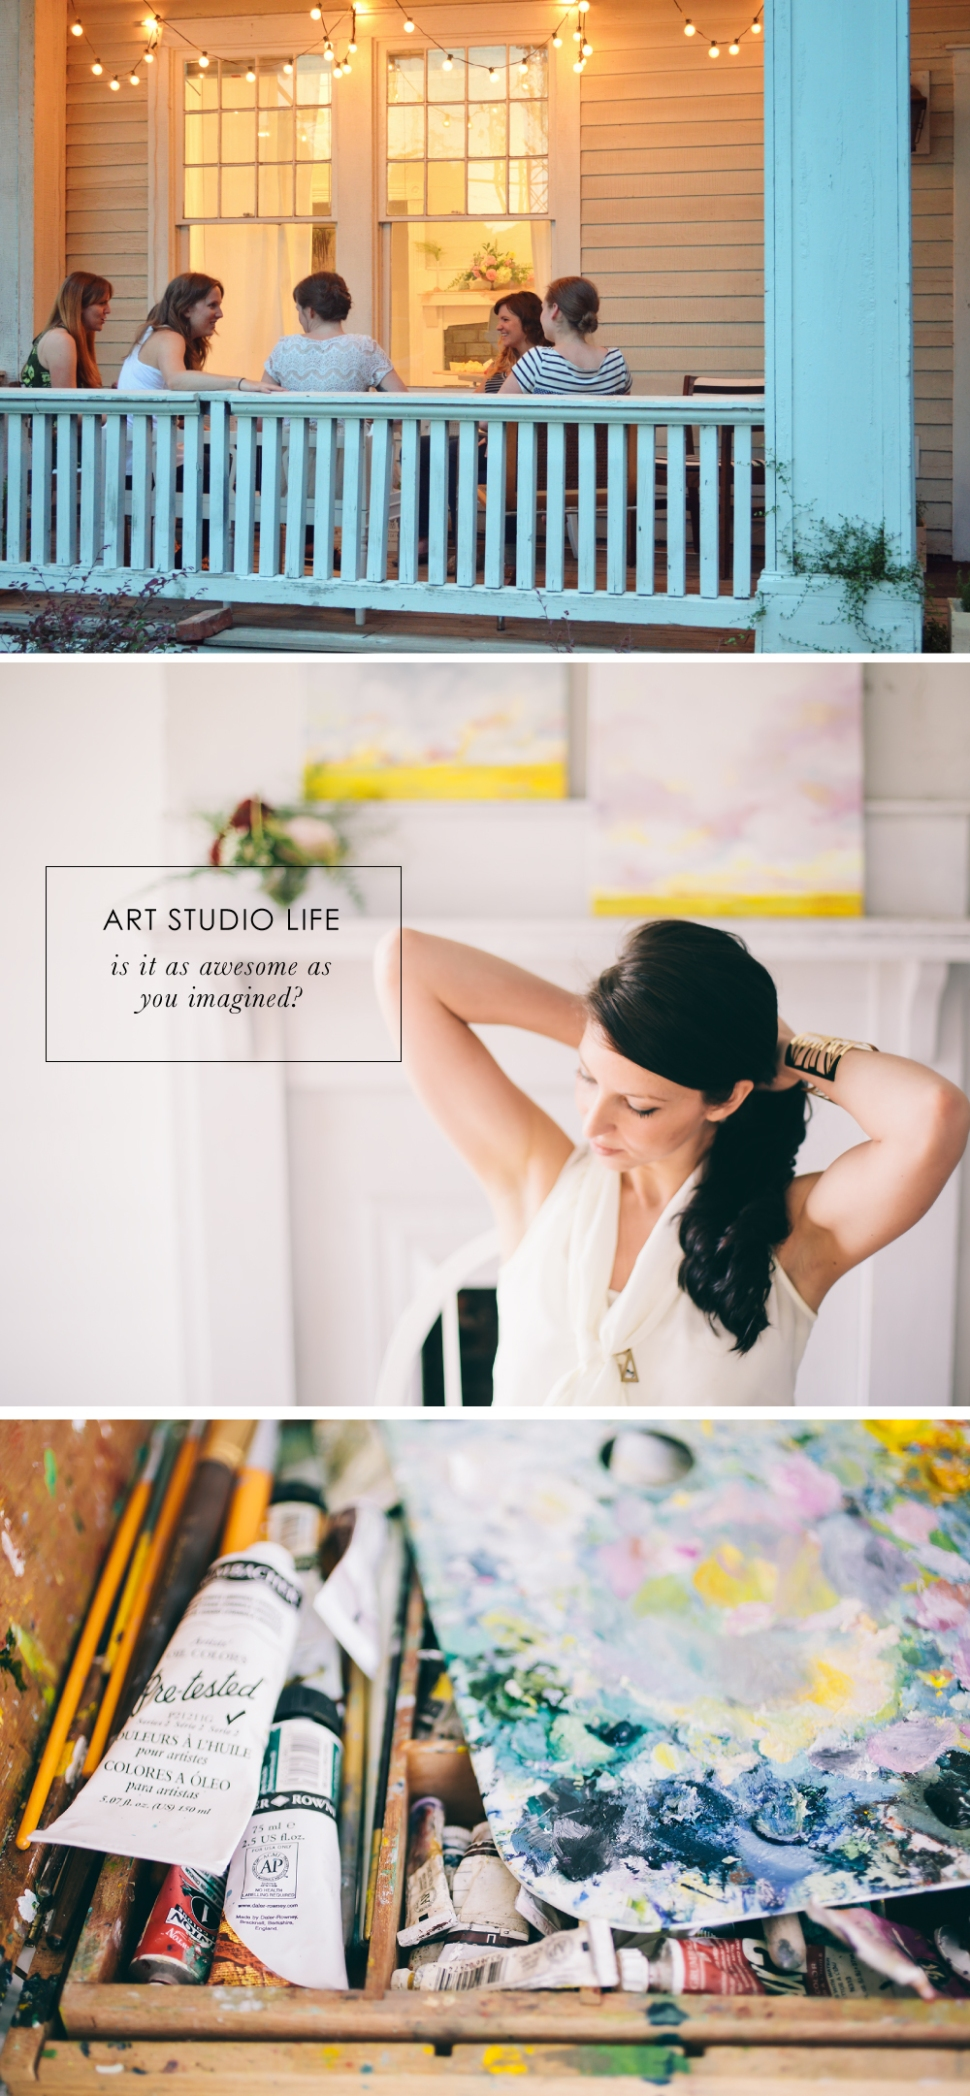 Art Studio Life: Is it as awesome as you always imagined?